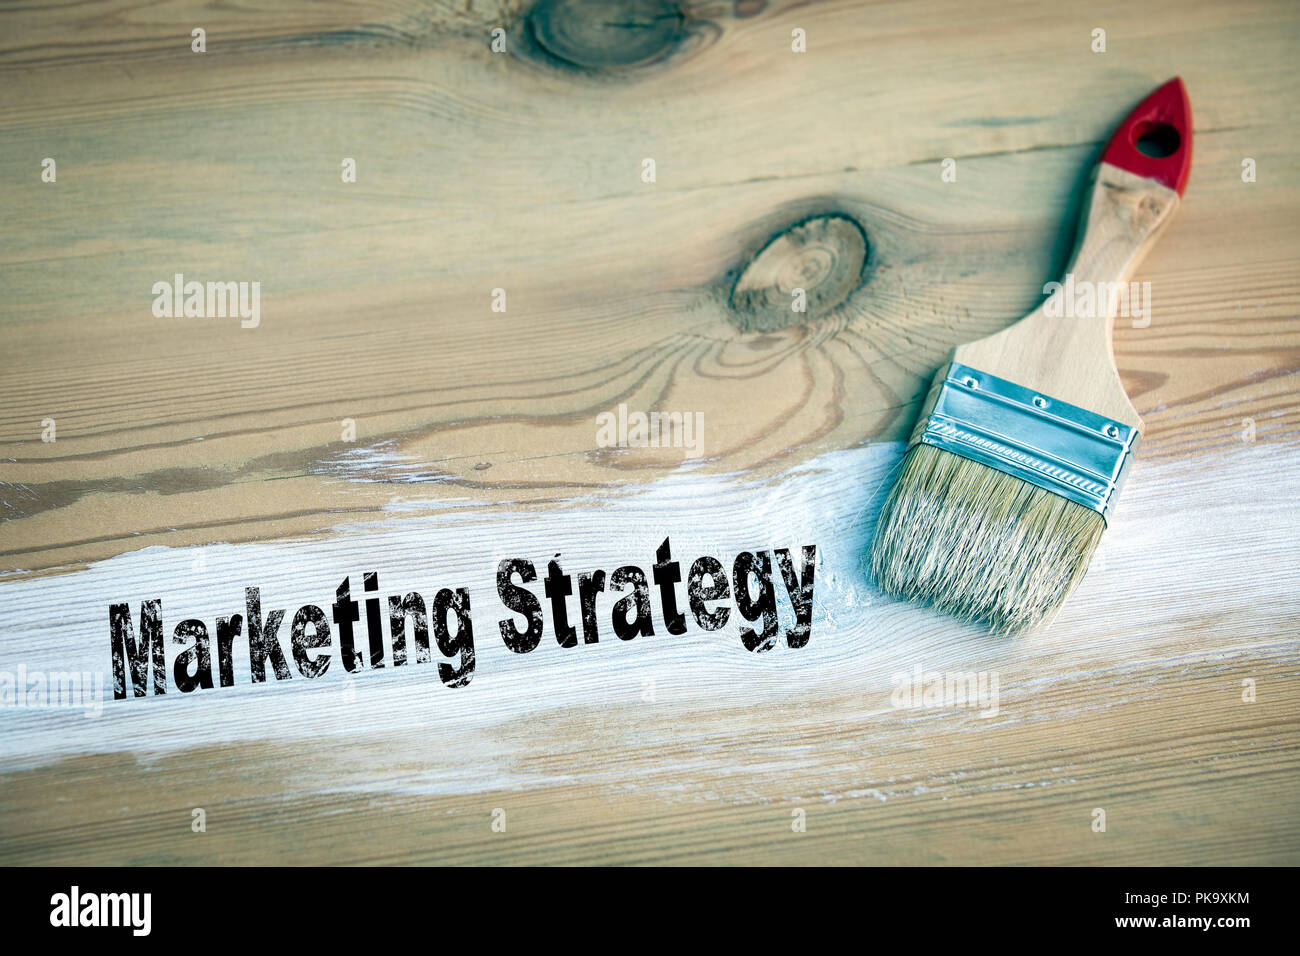 Marketing Strategy Business concept - Stock Image